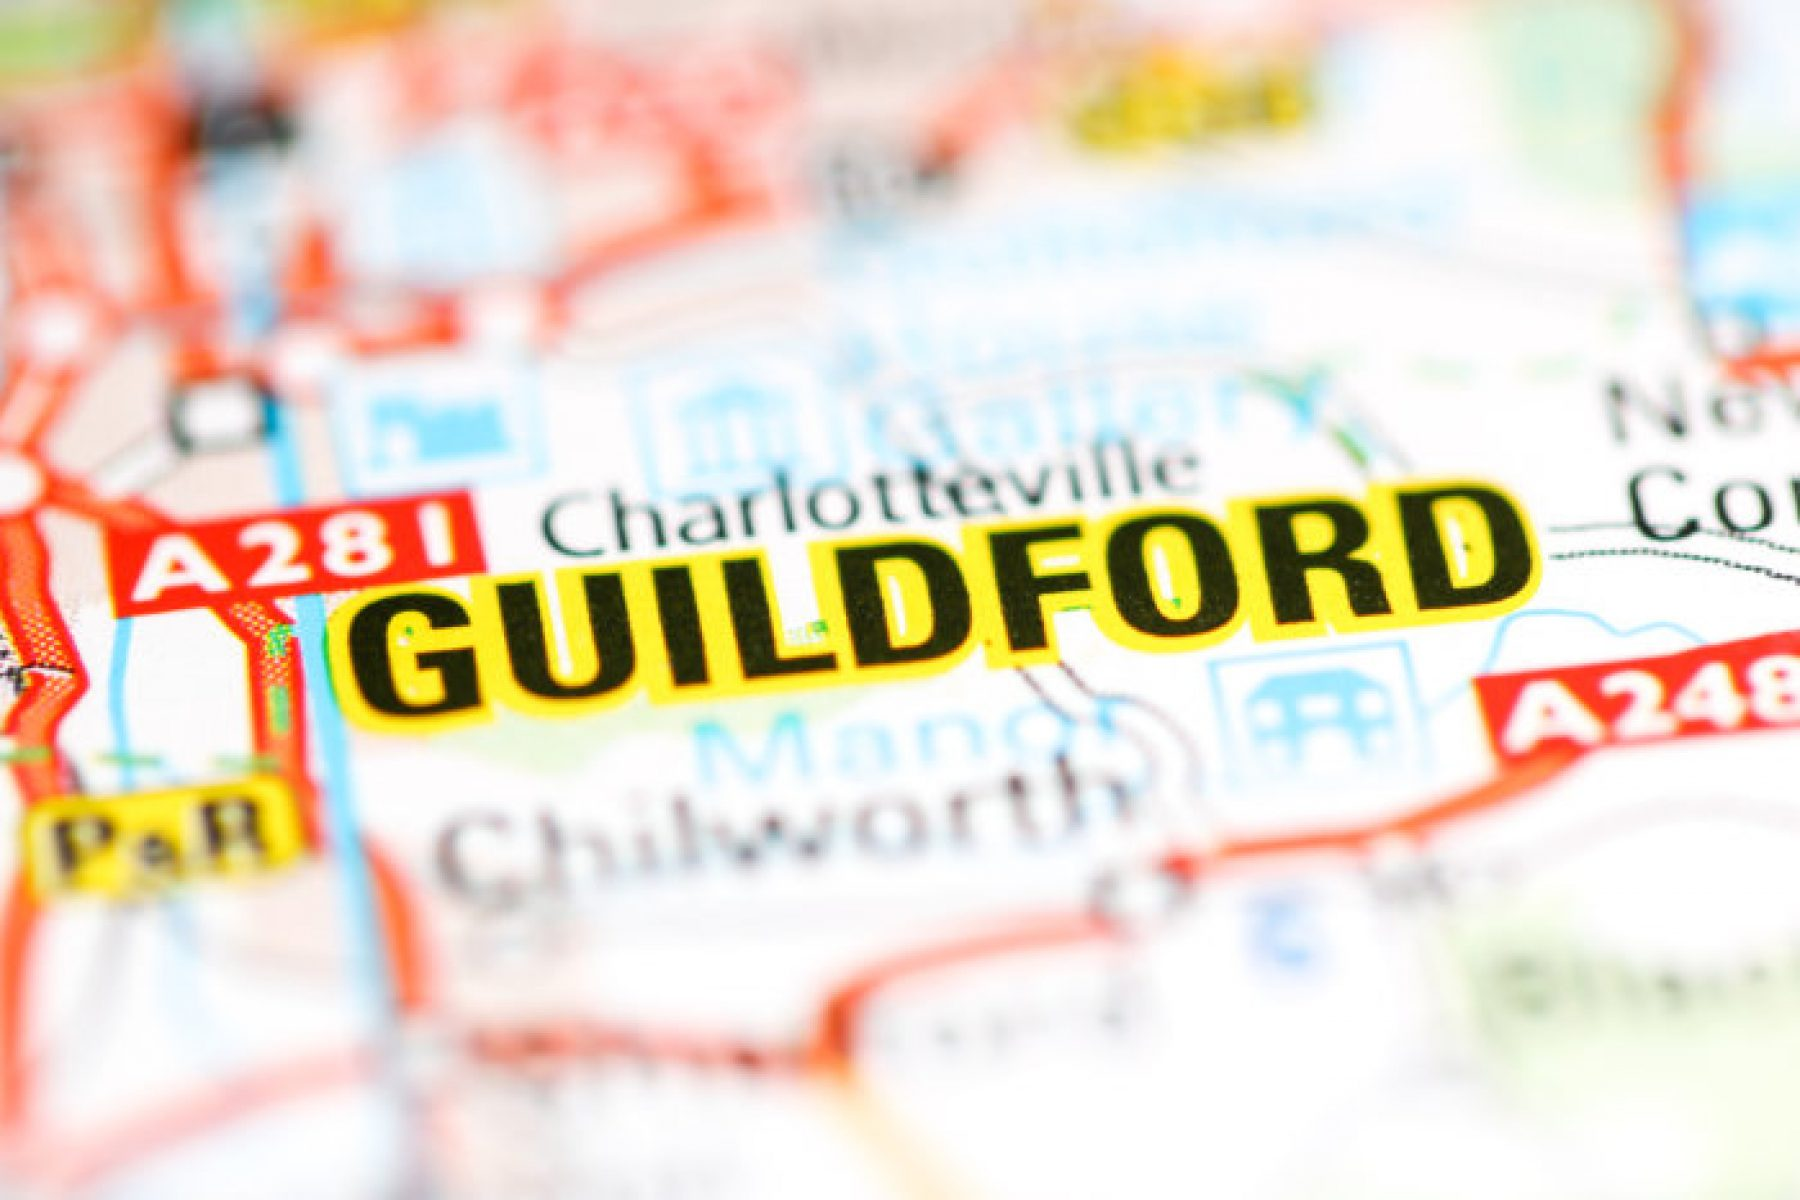 franchise opportunities in Guildford